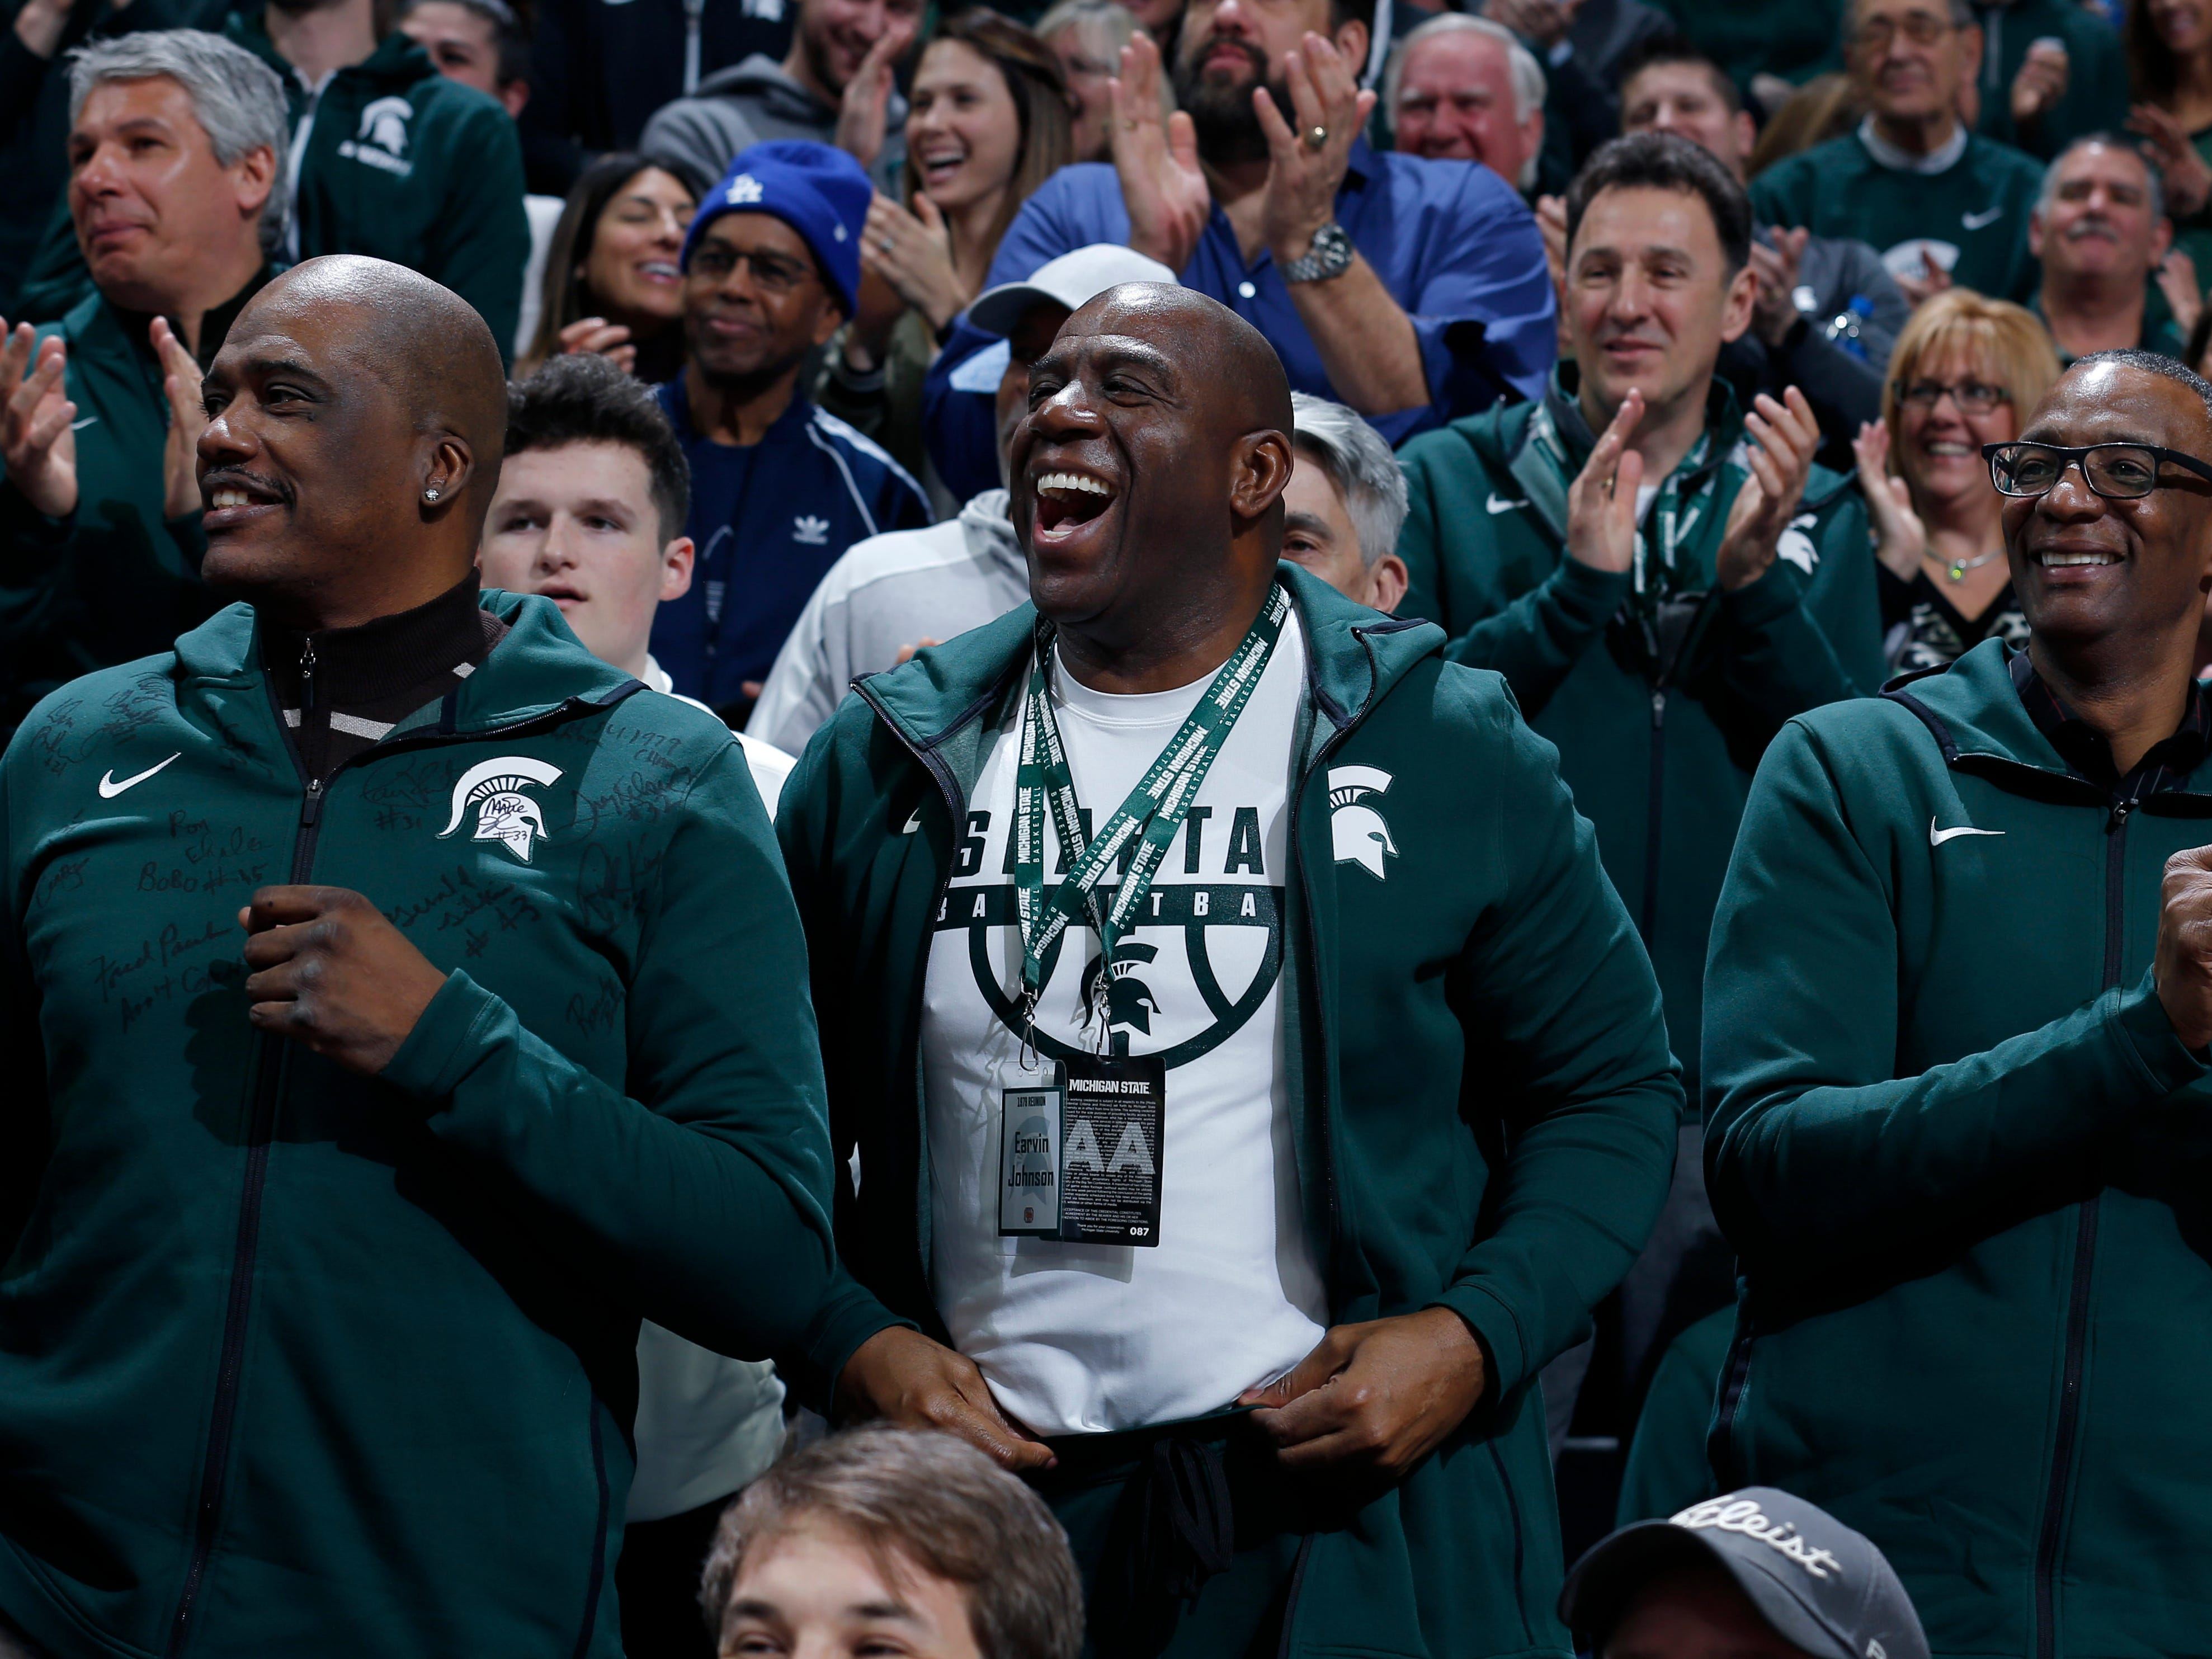 Former players on Michigan State's 1979 national championship team, including Jay Vincent, left, Magic Johnson, center, and Greg Kelser, right, on Saturday, Feb. 9, 2019, in East Lansing.